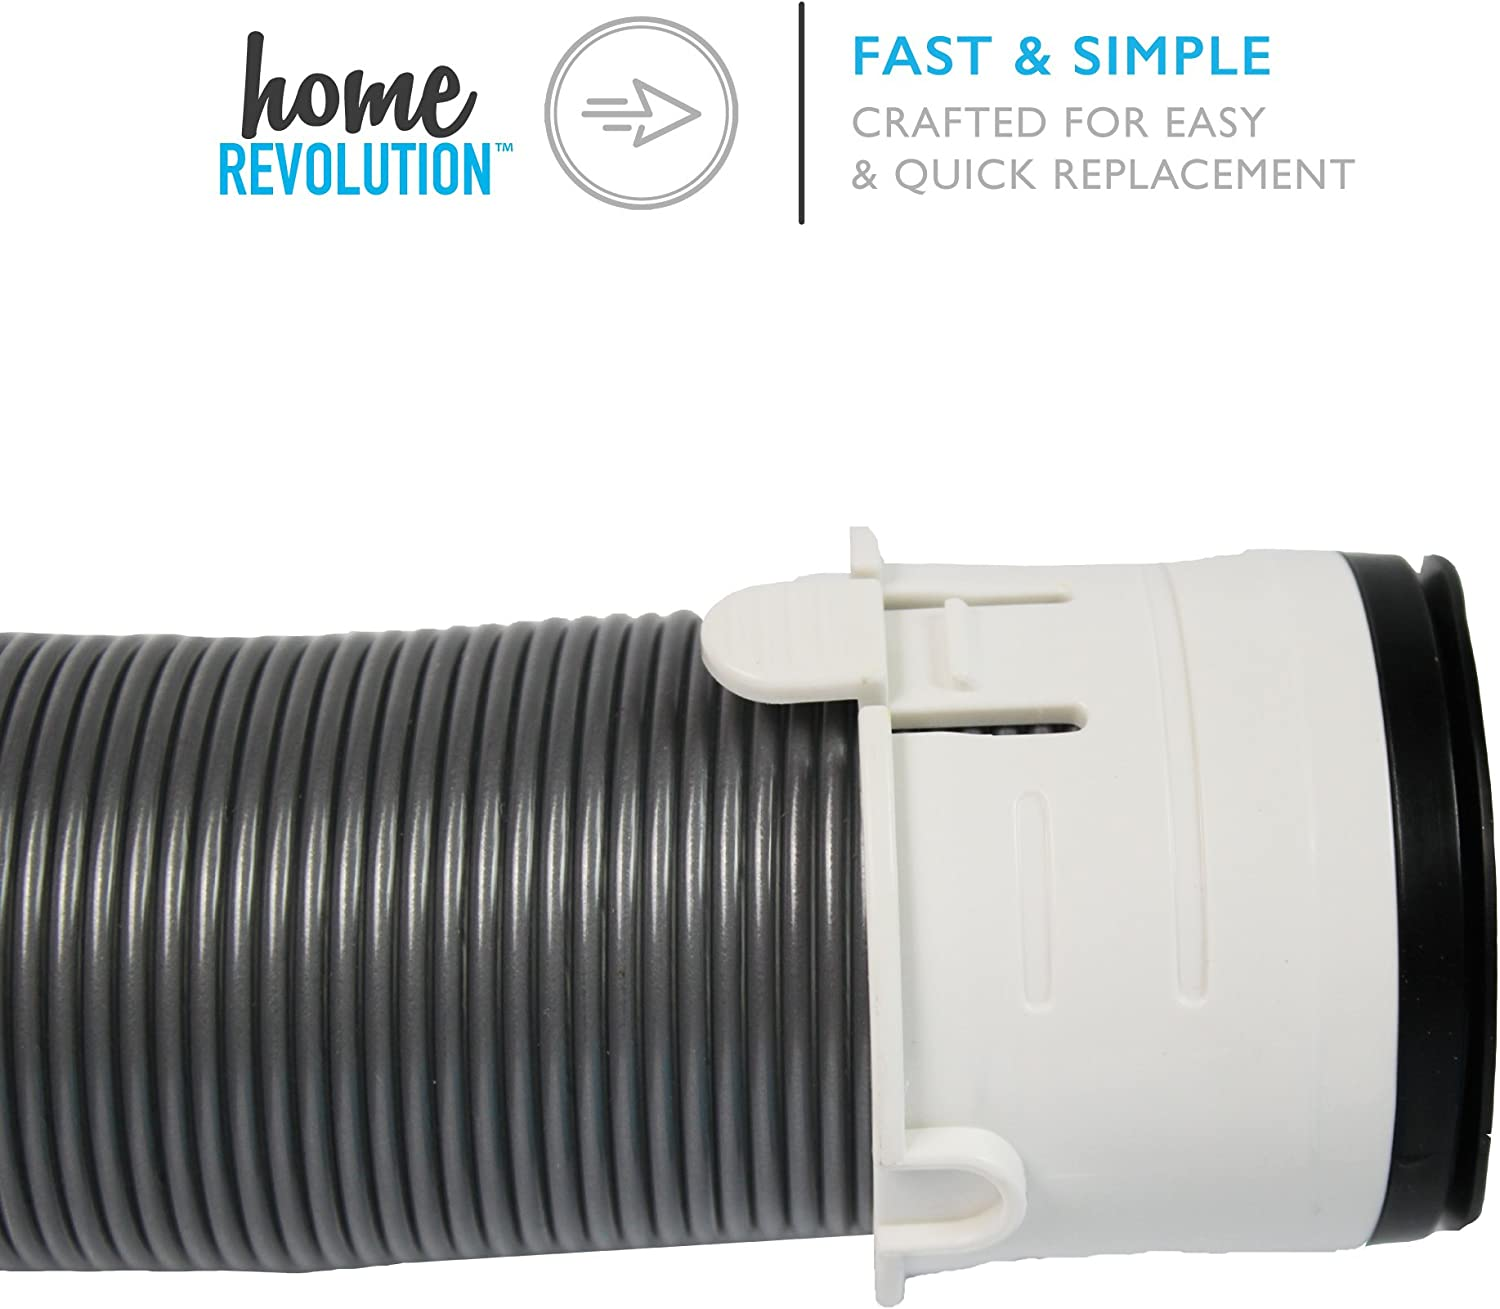 Home Revolution 2 Replacement Vacuum Hose NV356 and NV357 and Part 156FFJ Fits Shark Navigator Lift-Away Professional NV355